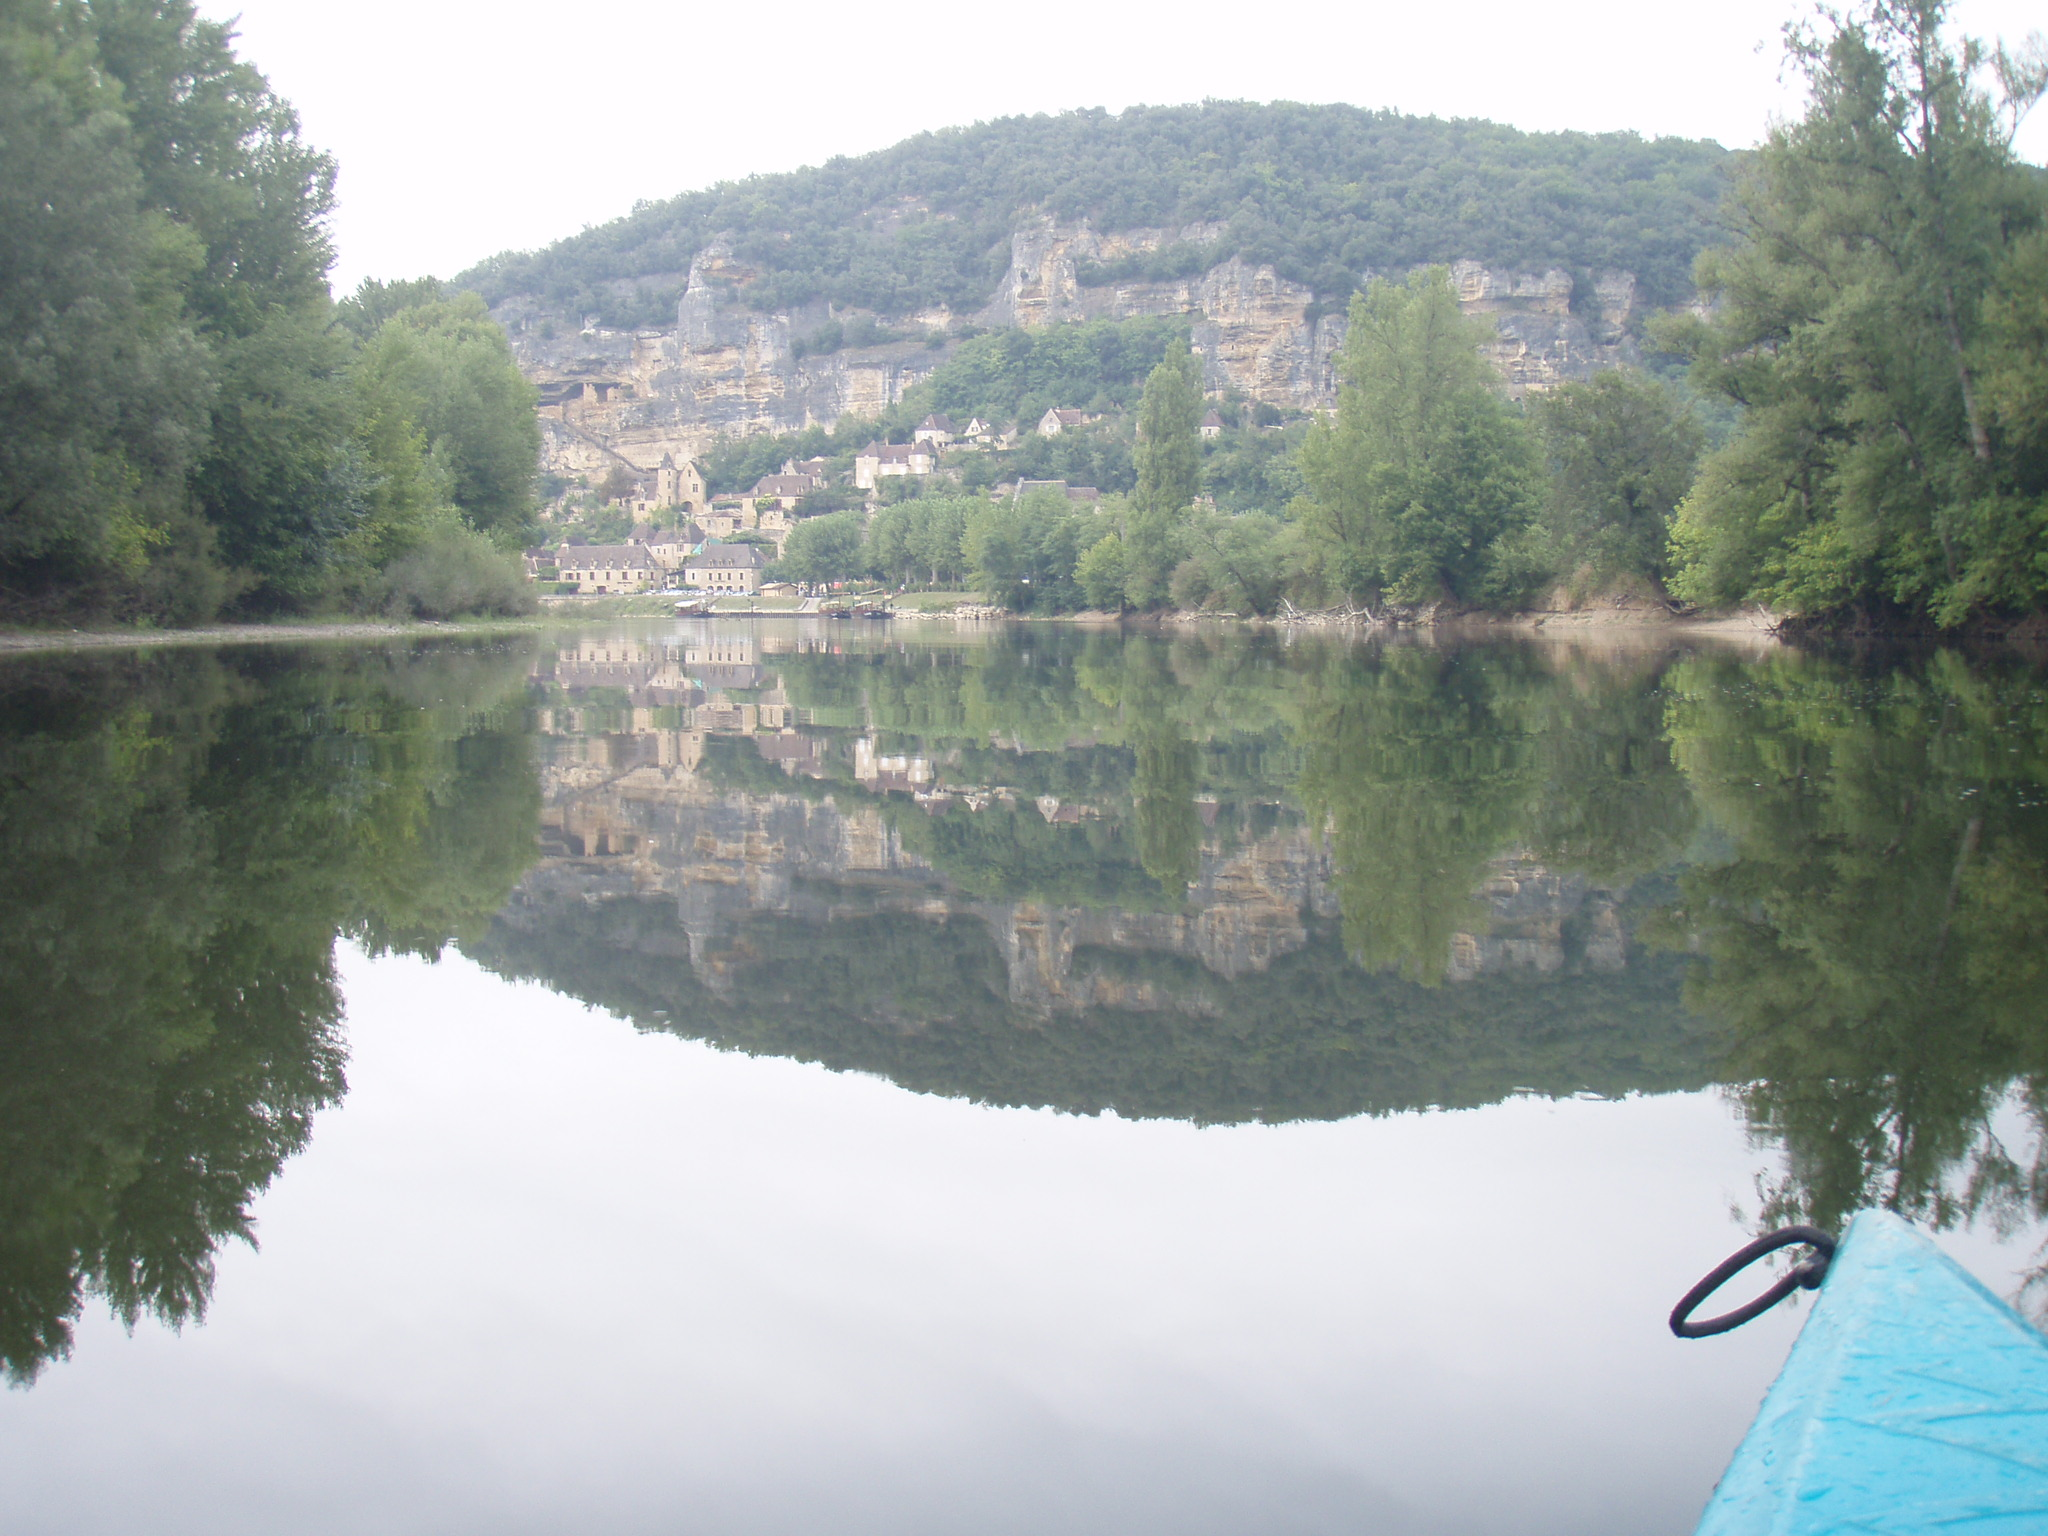 One trip was canoeing down the Dordogne River in France